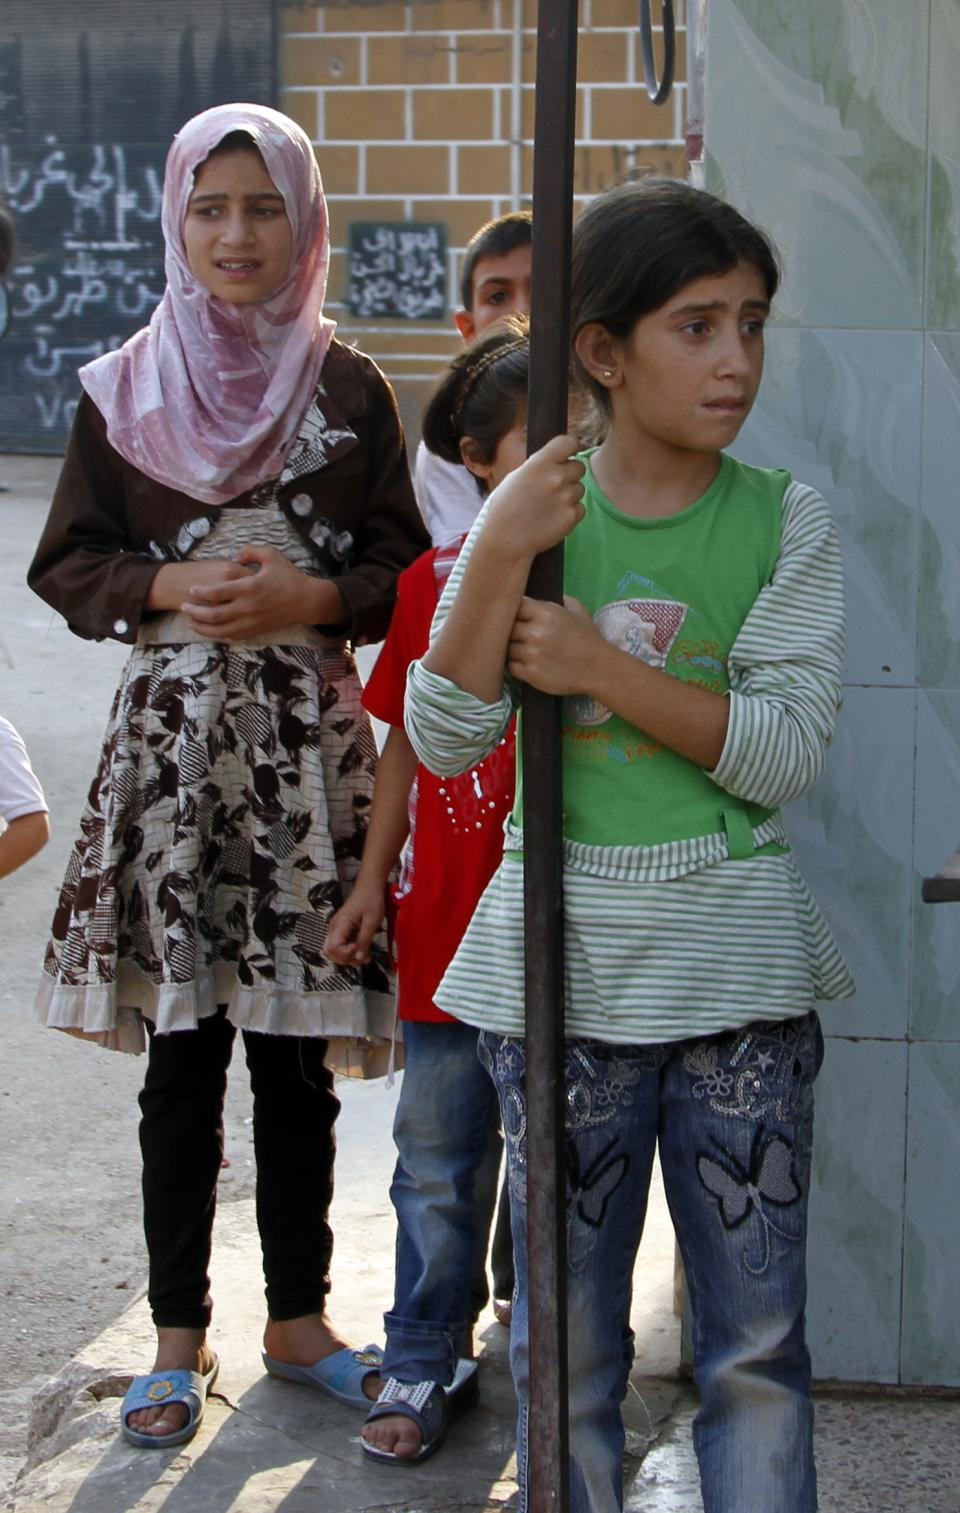 Syrian girls react as they stand looking at the funeral of 29 year-old Free Syrian Army fighter, Husain Al-Ali, who was killed during clashes in Aleppo, in town of Marea on the outskirts of  Aleppo city, Syria, Thursday, Aug. 9, 2012. (AP Photo/ Khalil Hamra)